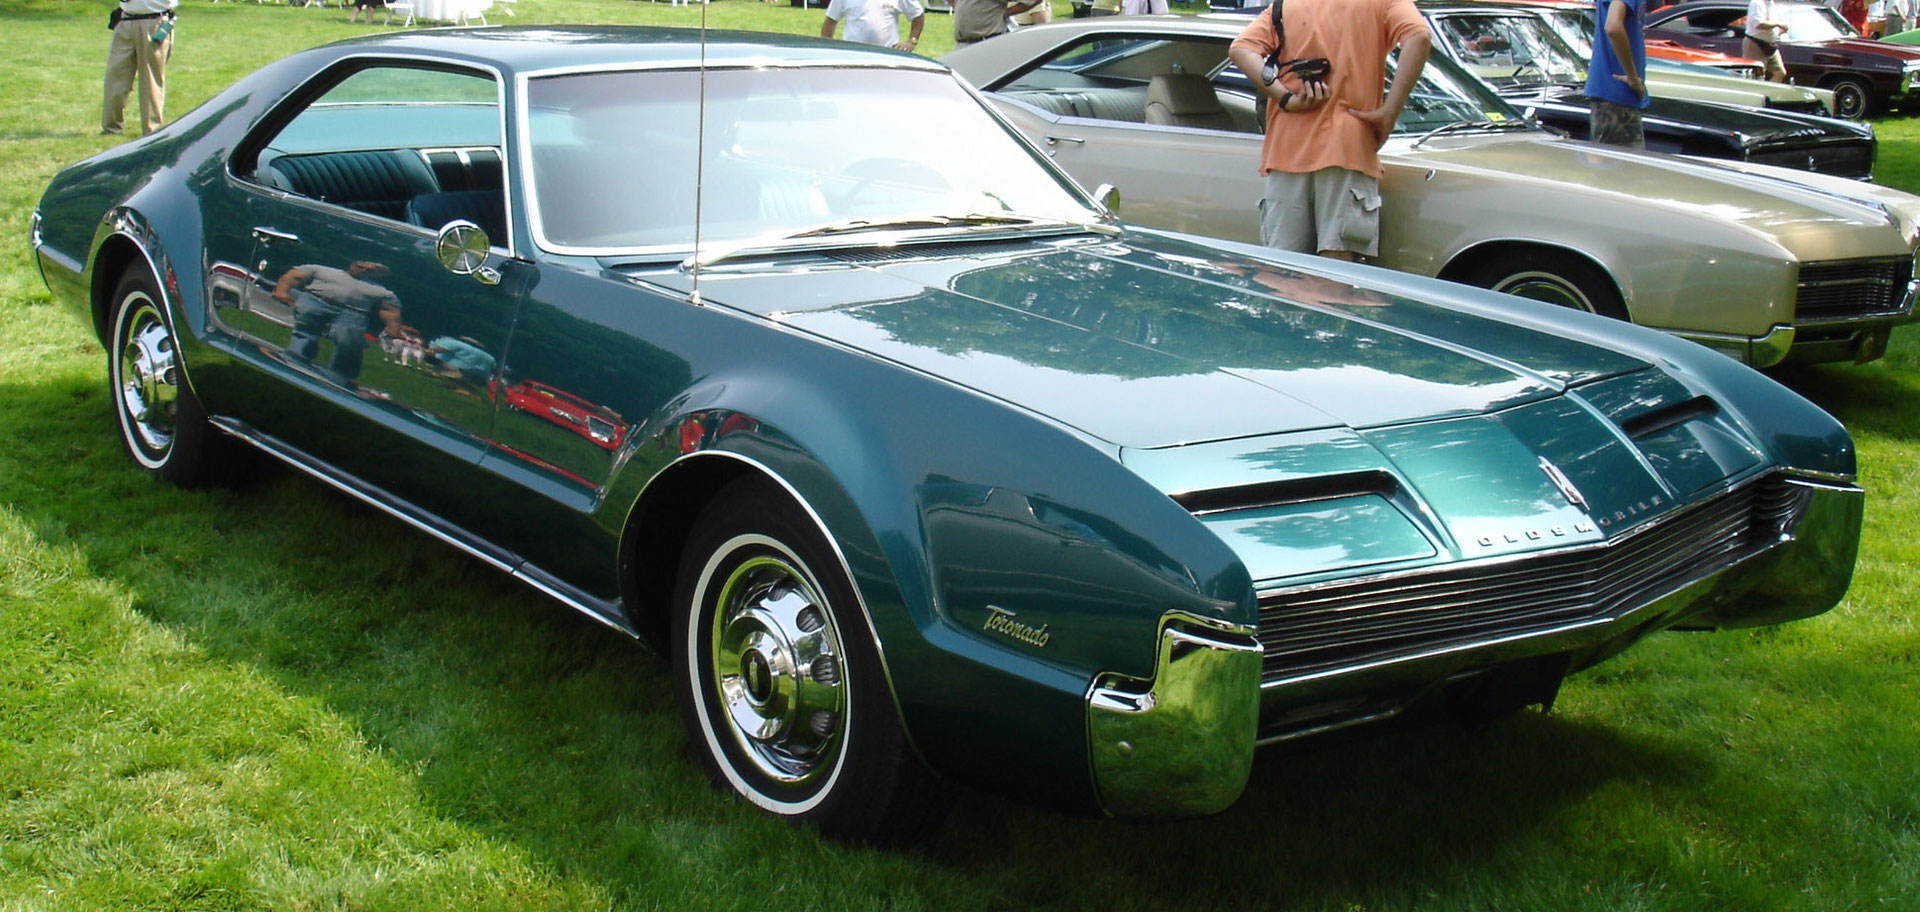 Outstanding 69 Oldsmobile Pdf Manuals Download For Free Sar Pdf Manual Wiring Cloud Hisonuggs Outletorg